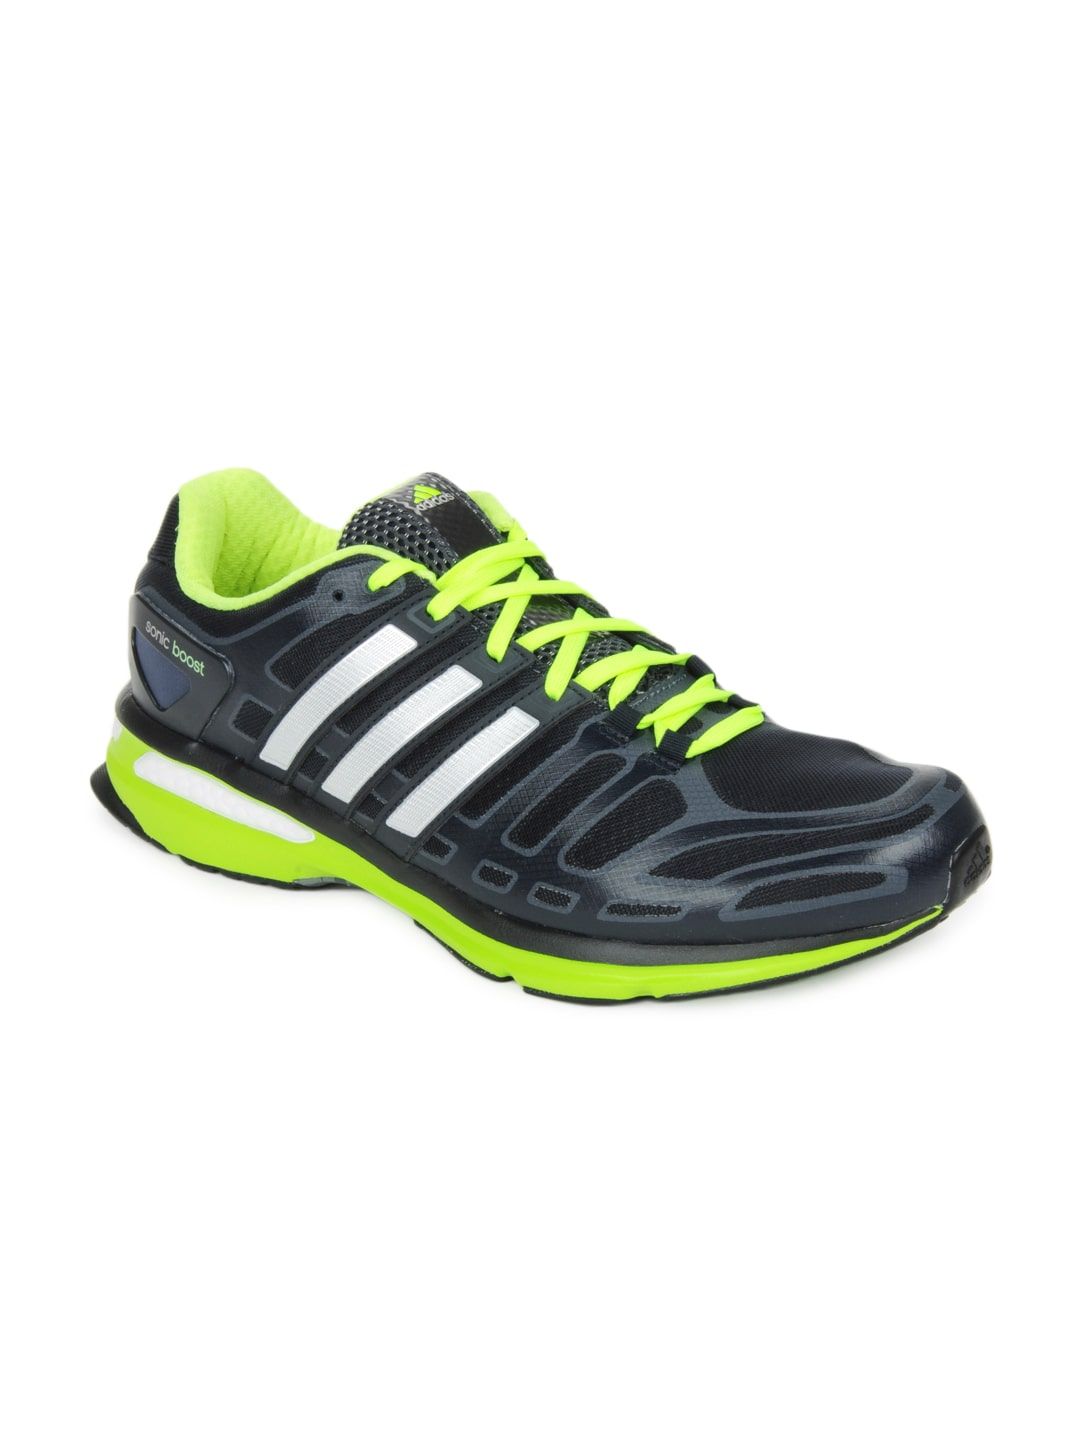 adidas sonic boost shoes price in india